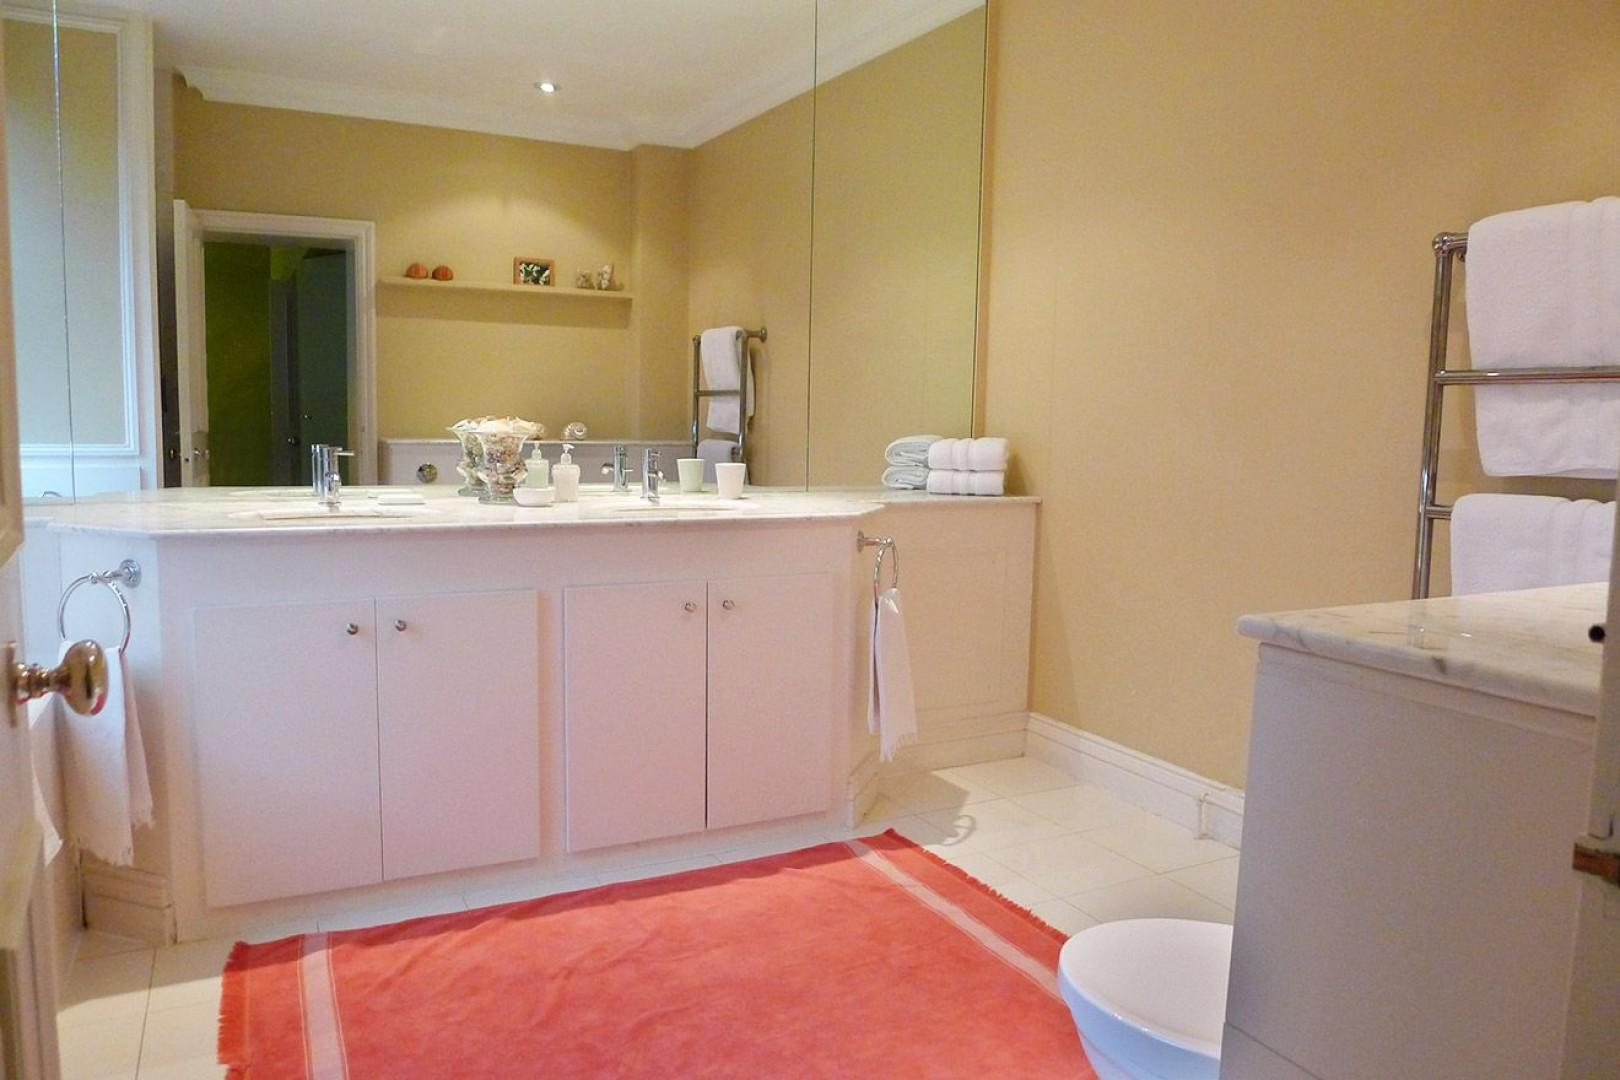 En suite with bathtub, shower, toilet and double sink